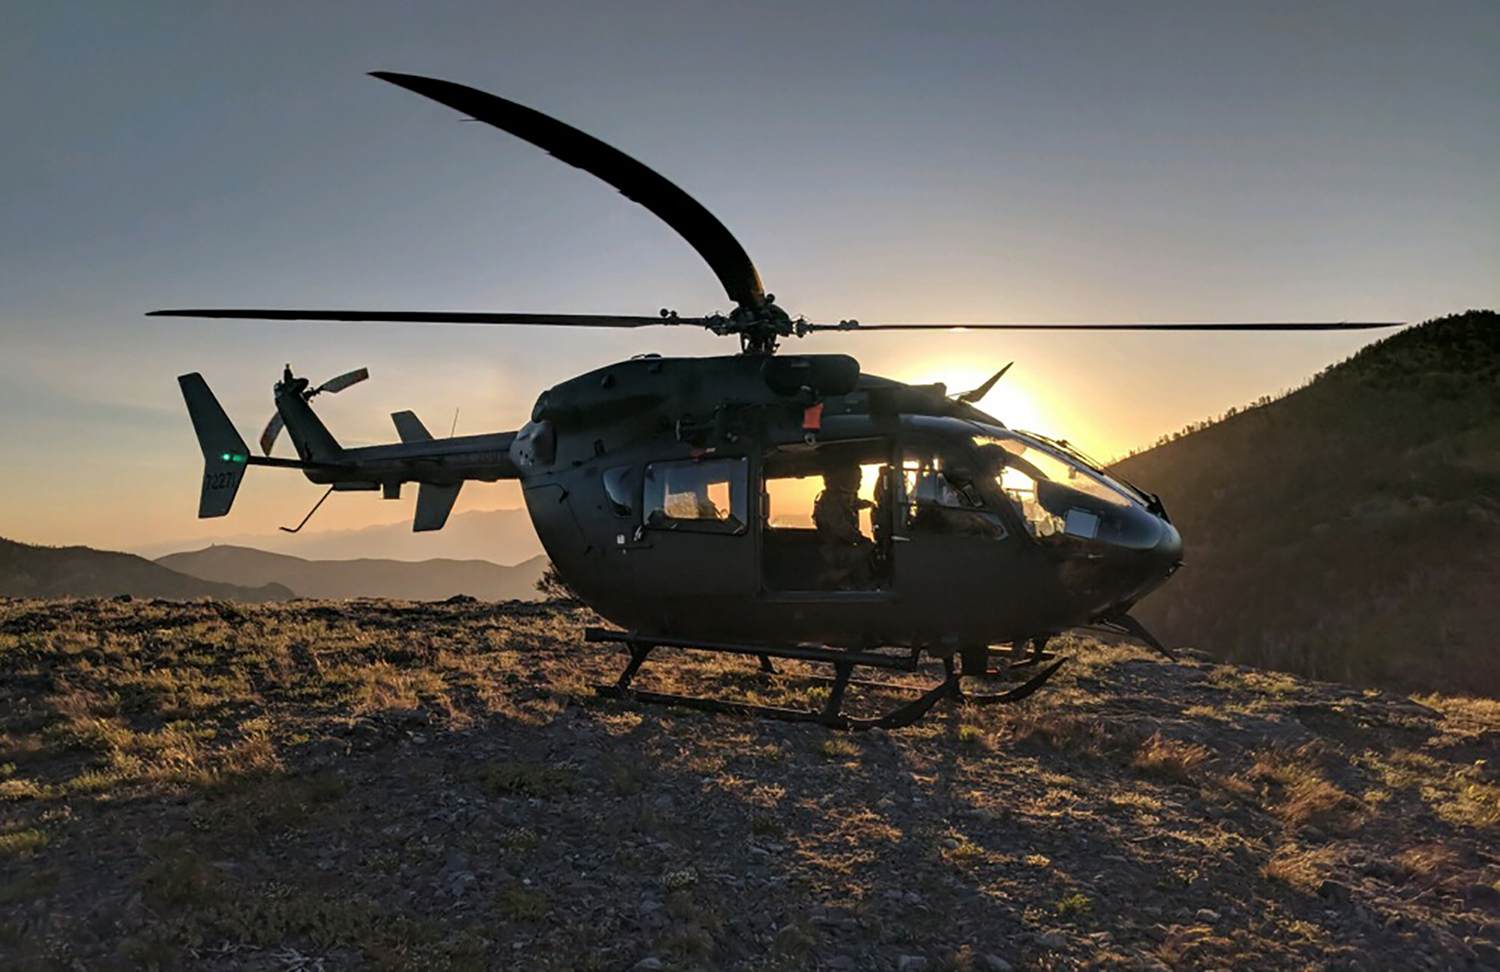 Lakota helicopters familiar face of Army aviation in southern Nevada